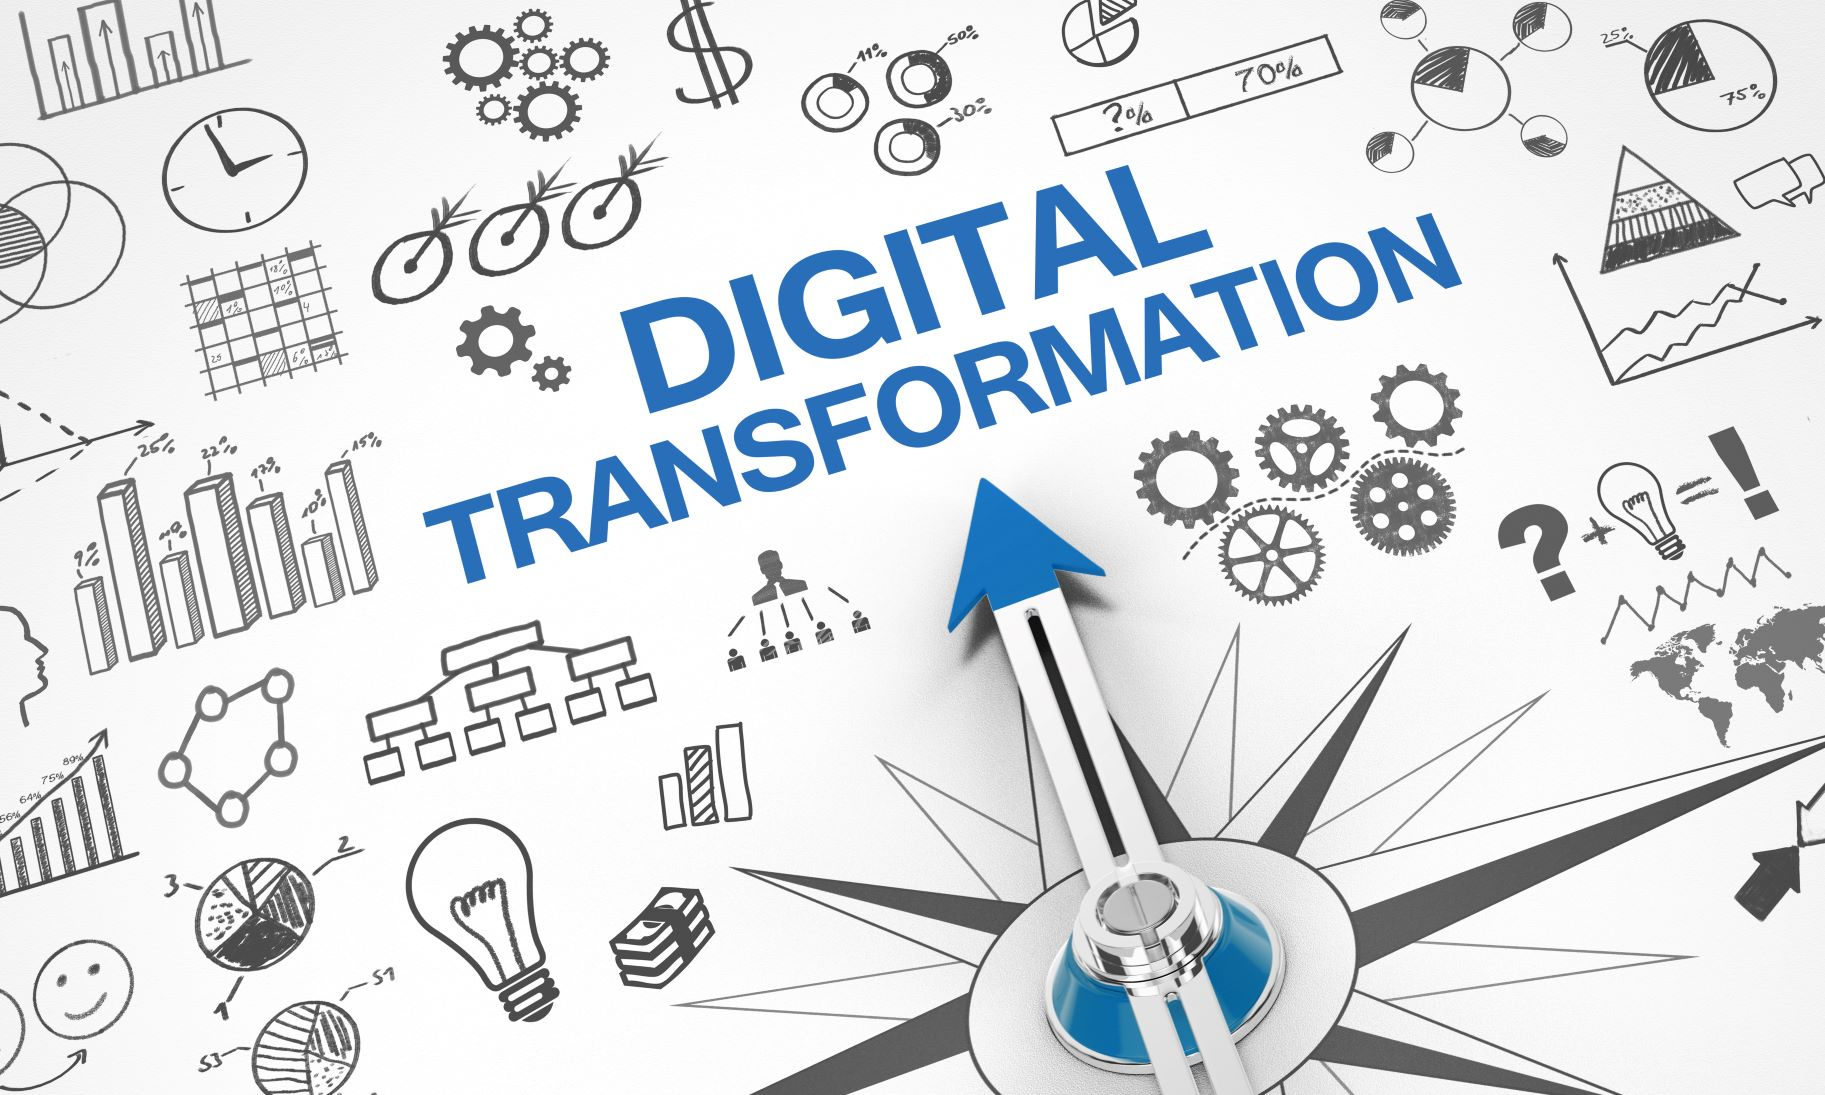 Digital transformation in kent